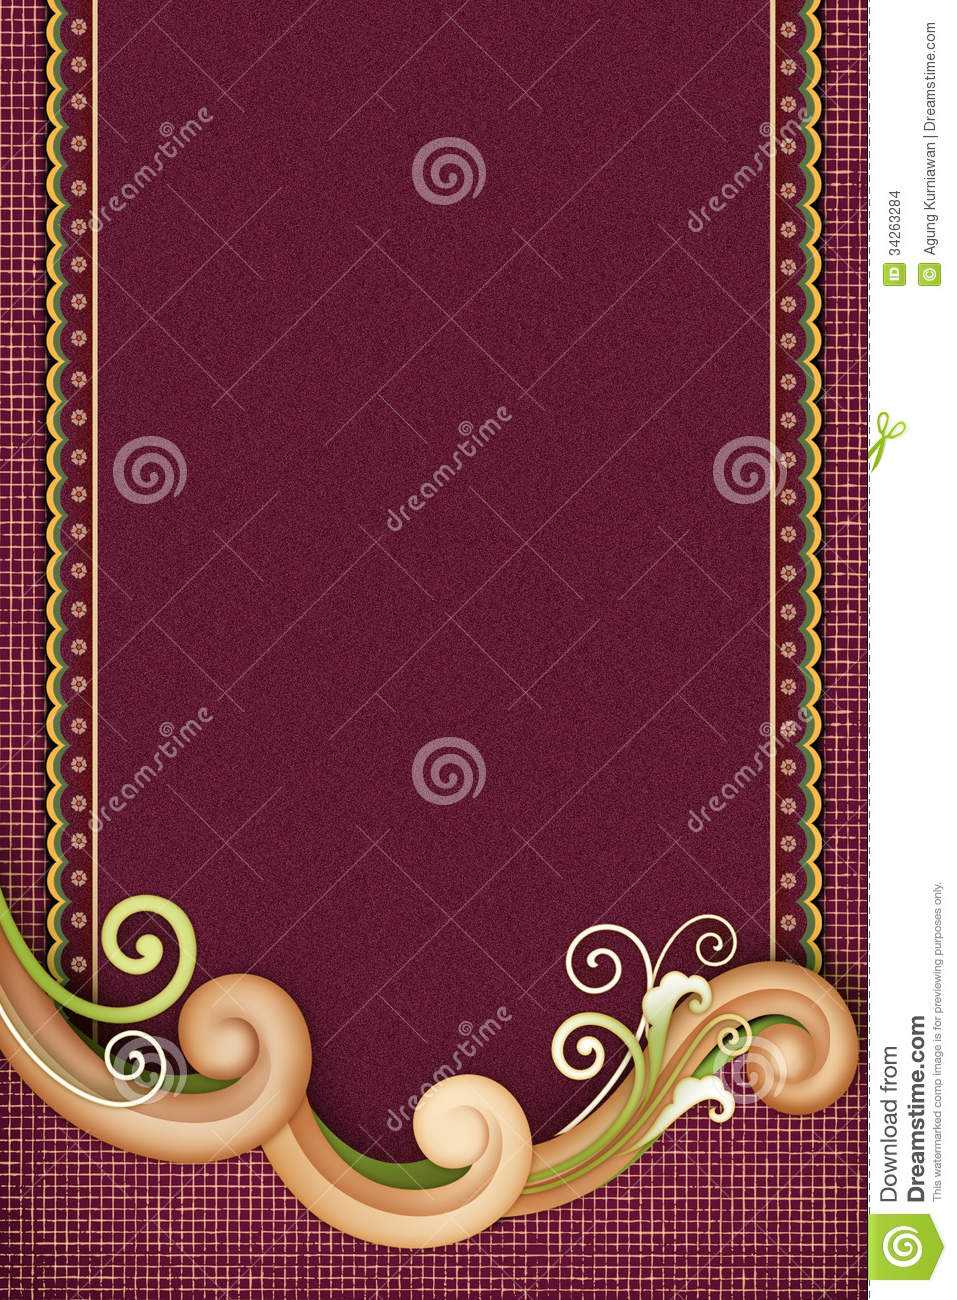 card backgrounds